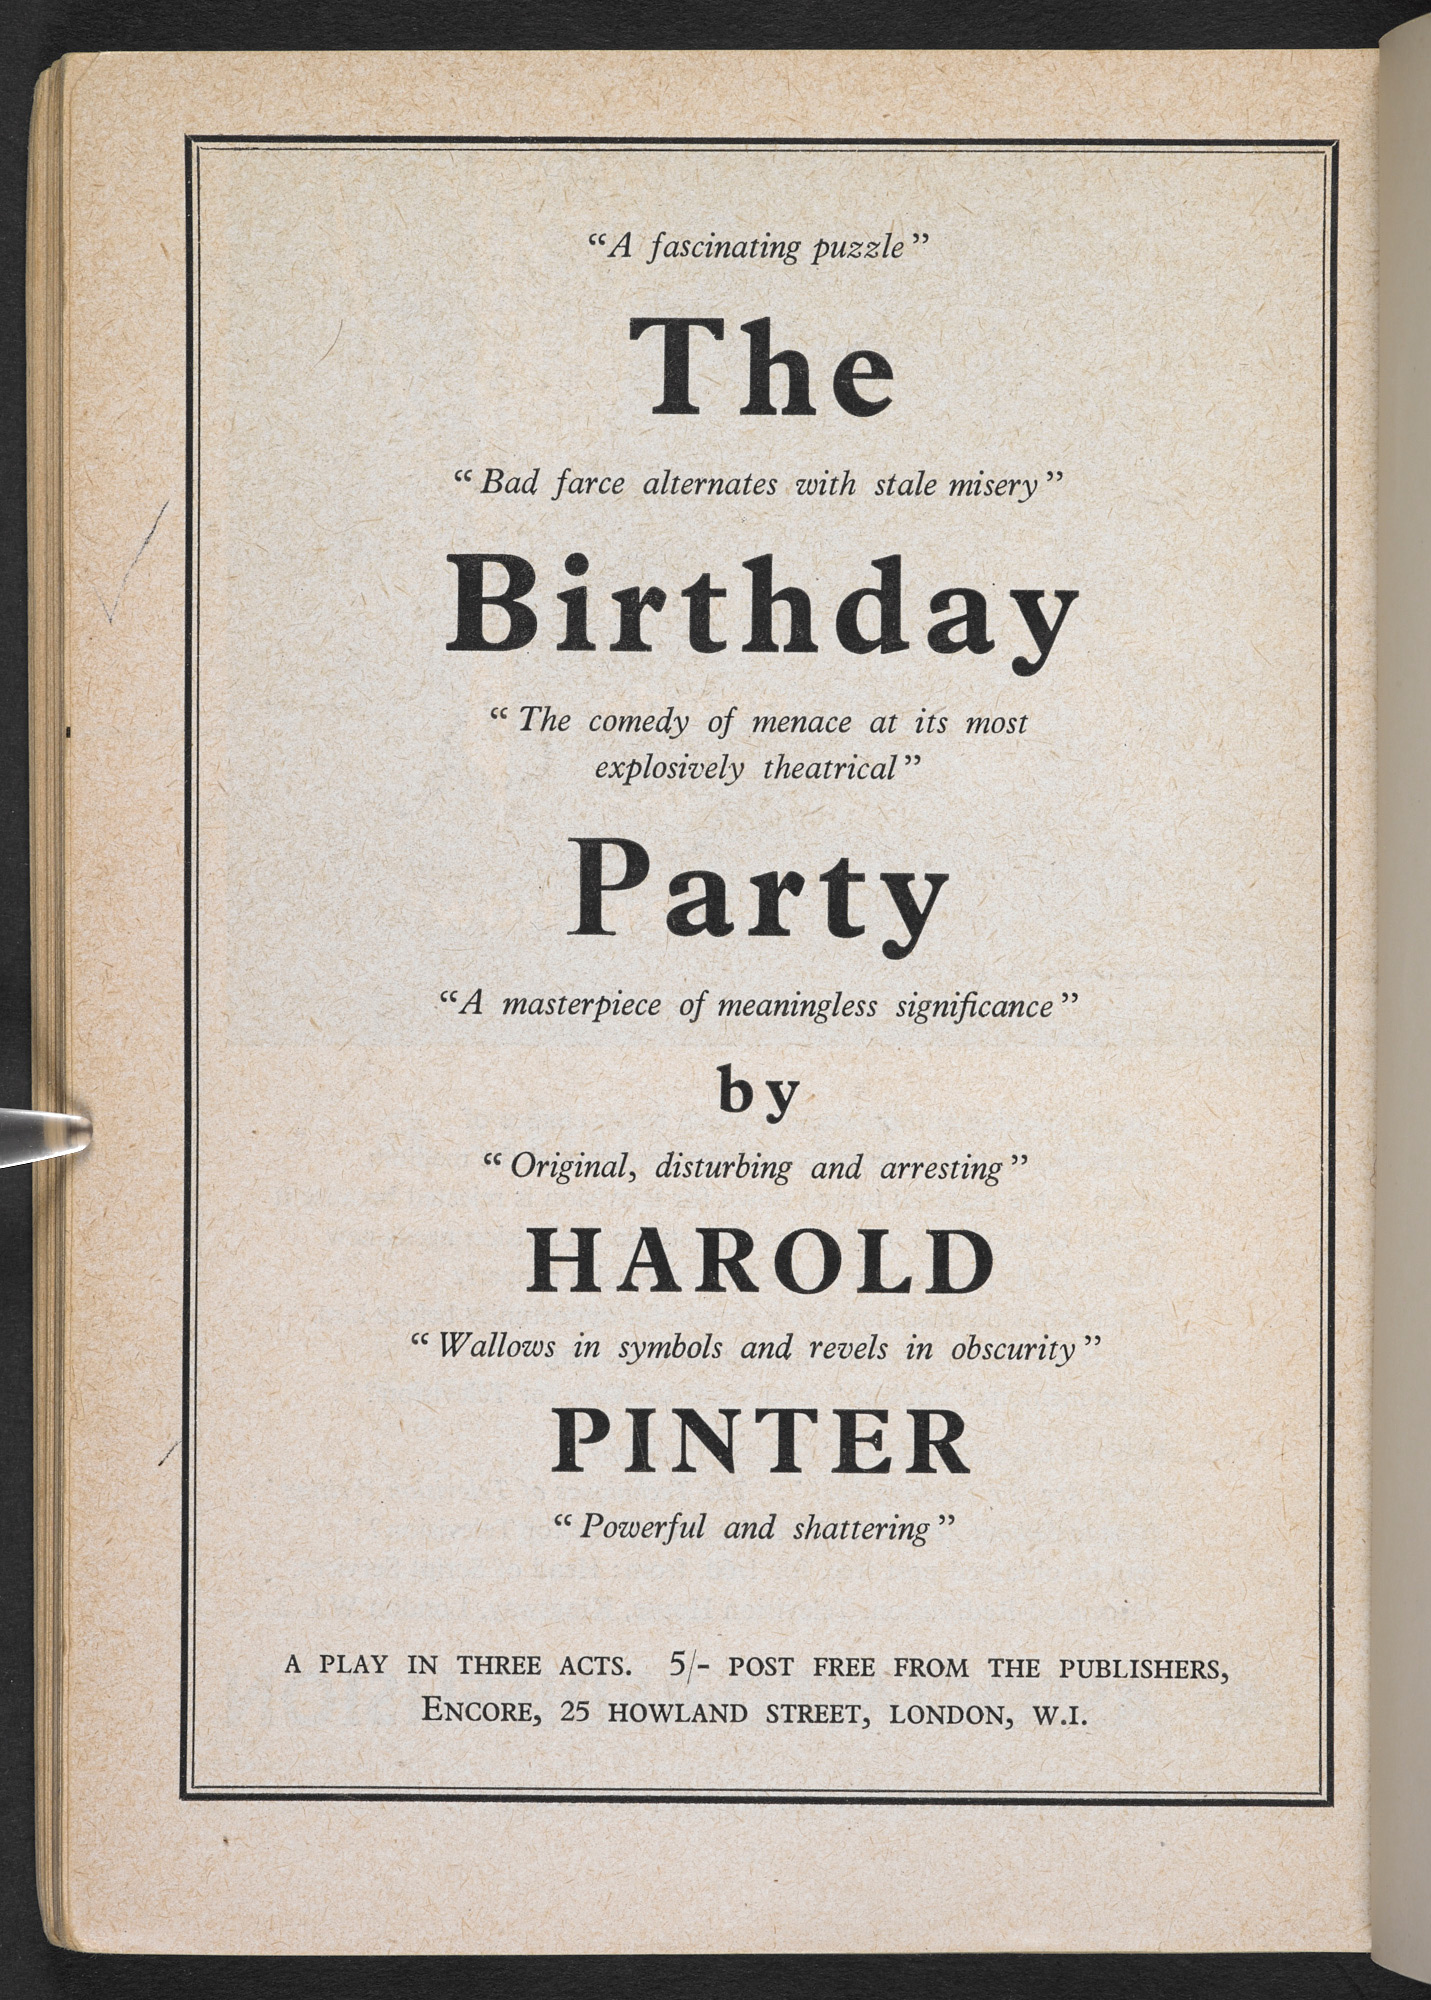 Advertisement for copies of The Birthday Party